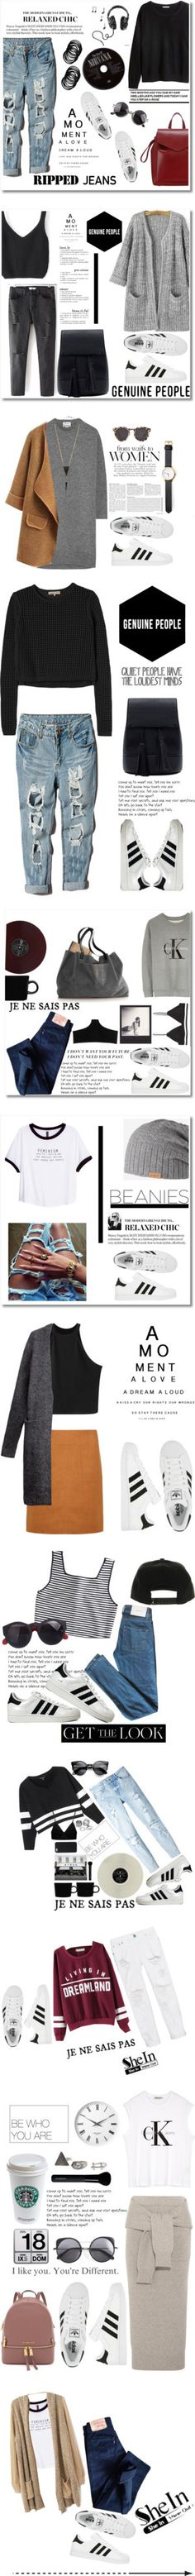 Adidas superstar style by madamitsa on Polyvore featuring Michael Kors, Loeffler Randall, H&M, adidas, rippedjeans, Genuine_People, Acne Studios, Illesteva, Alexis Bittar and Pieces